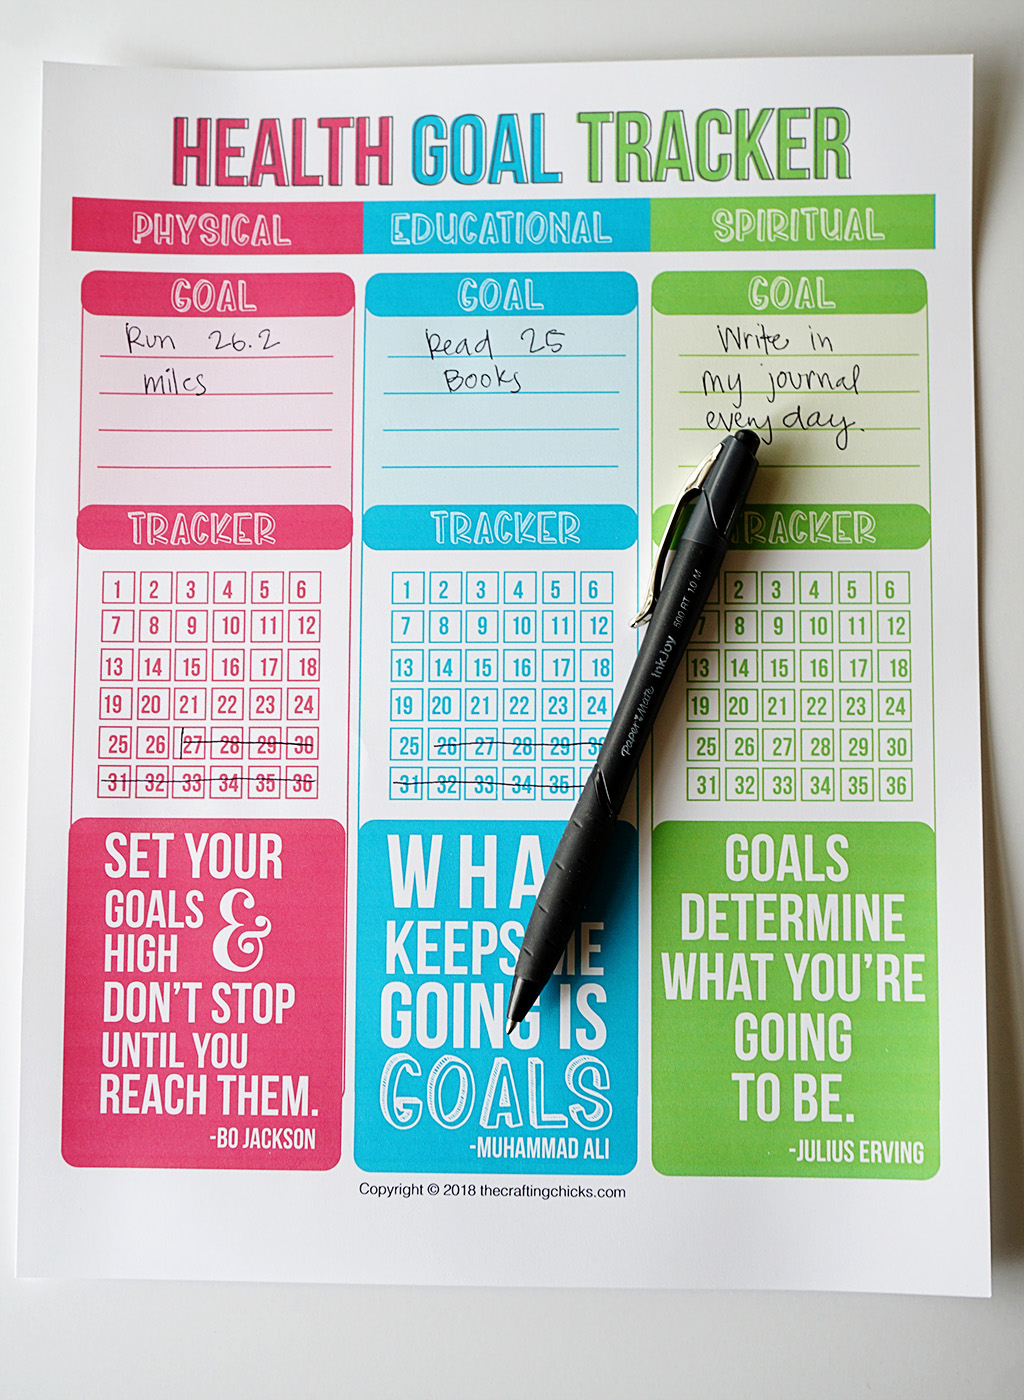 3 Health Areas Goal Tracker